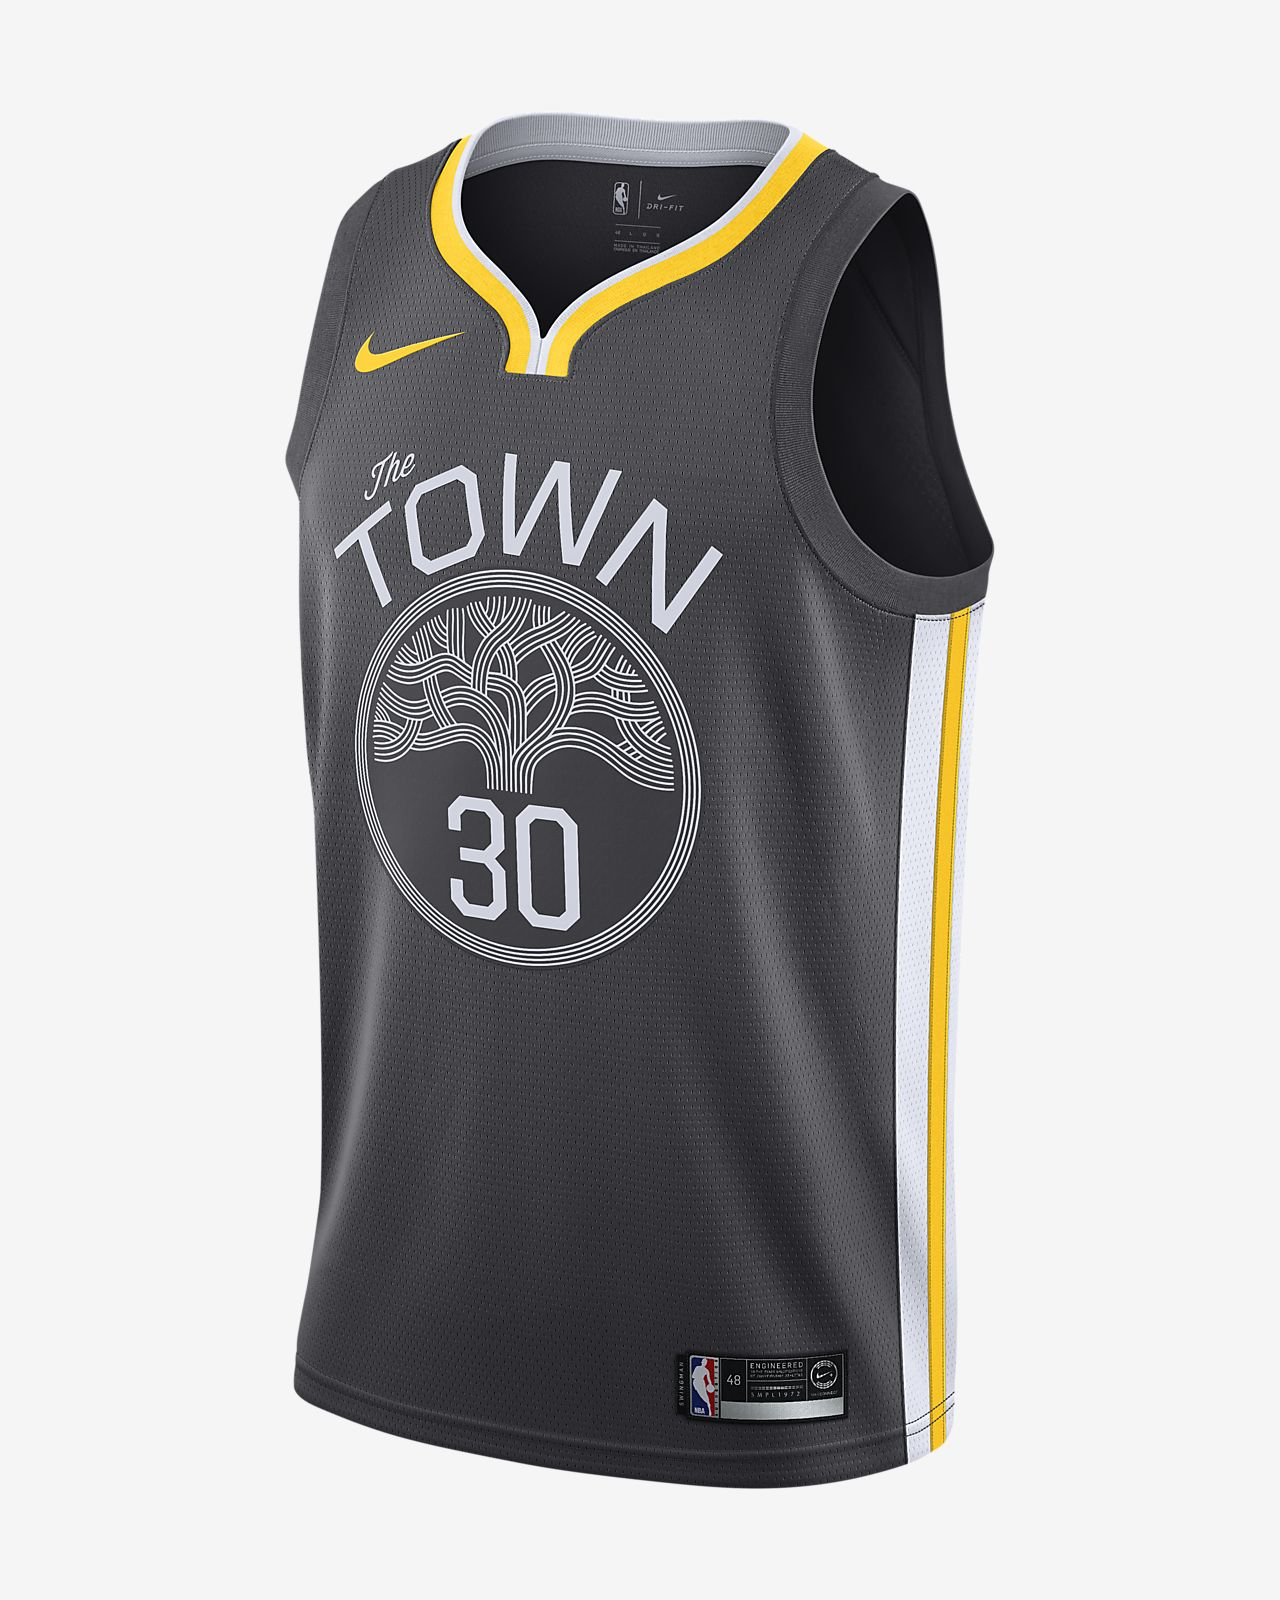 ac787231fa0 Men's Nike NBA Connected Jersey. Stephen Curry Statement Edition Swingman (Golden  State Warriors)